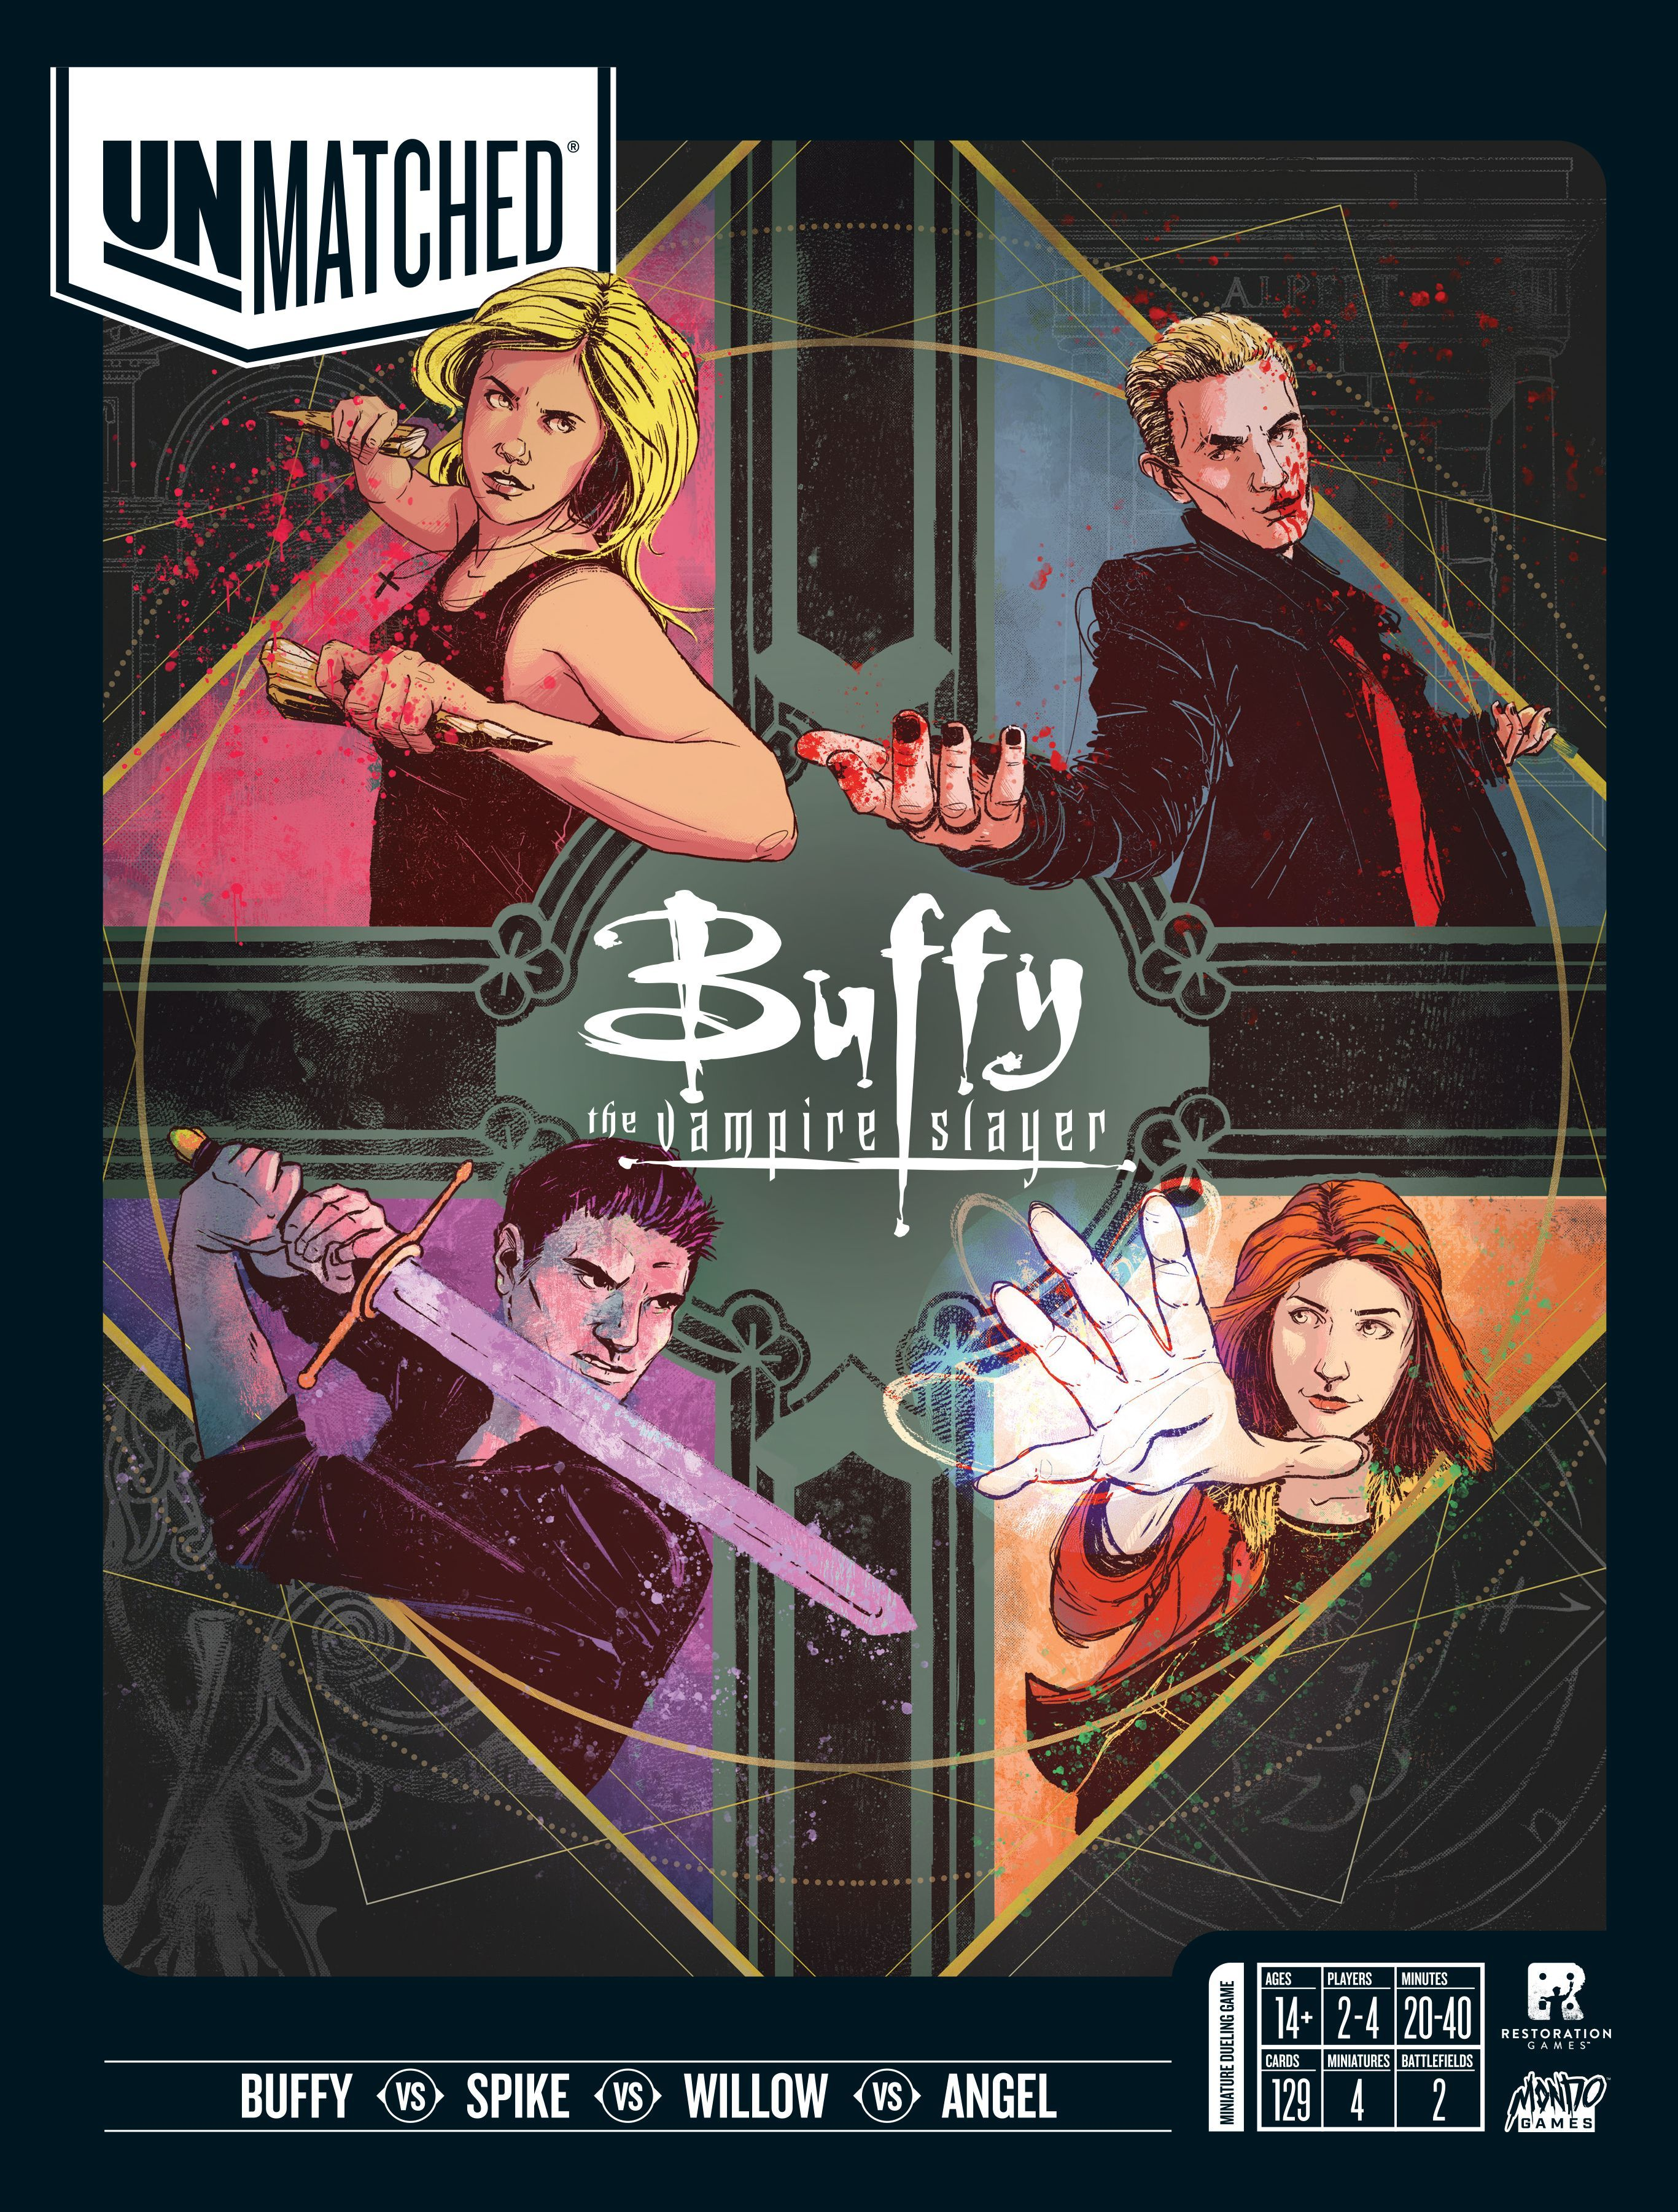 Unmatched Buffy the Vampire Slayer